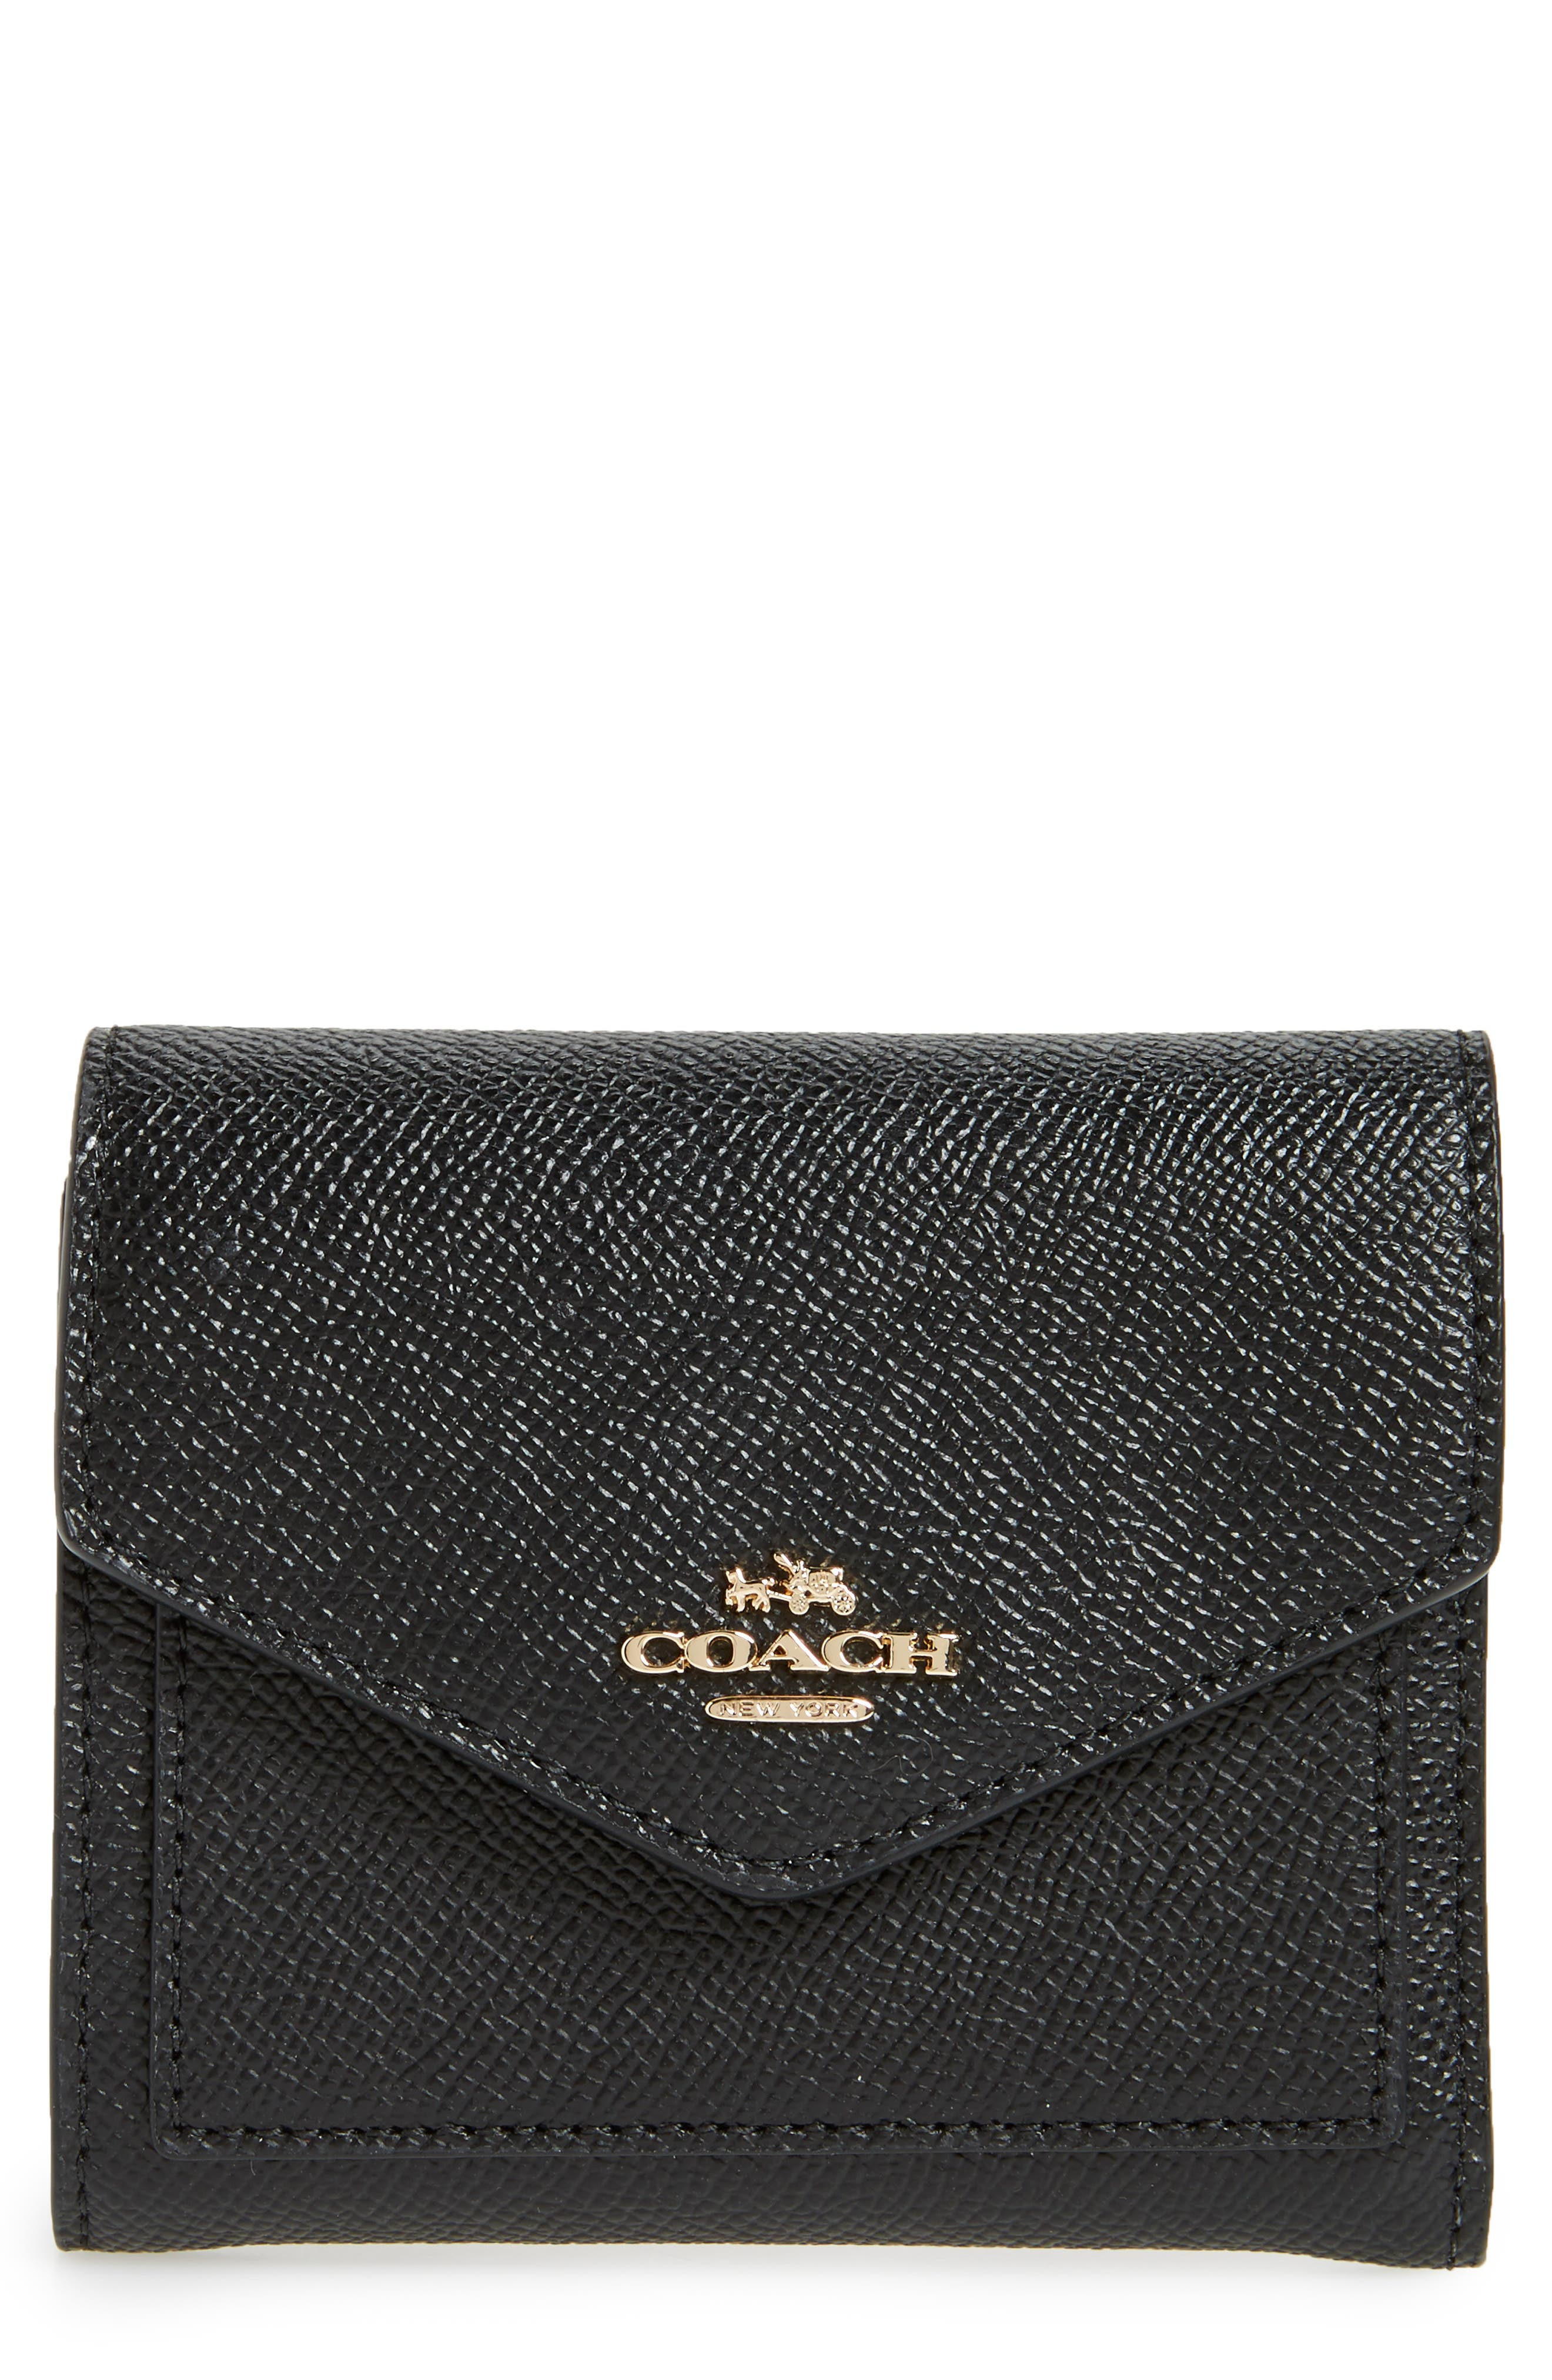 COACH Small Calfskin Leather Trifold Wallet